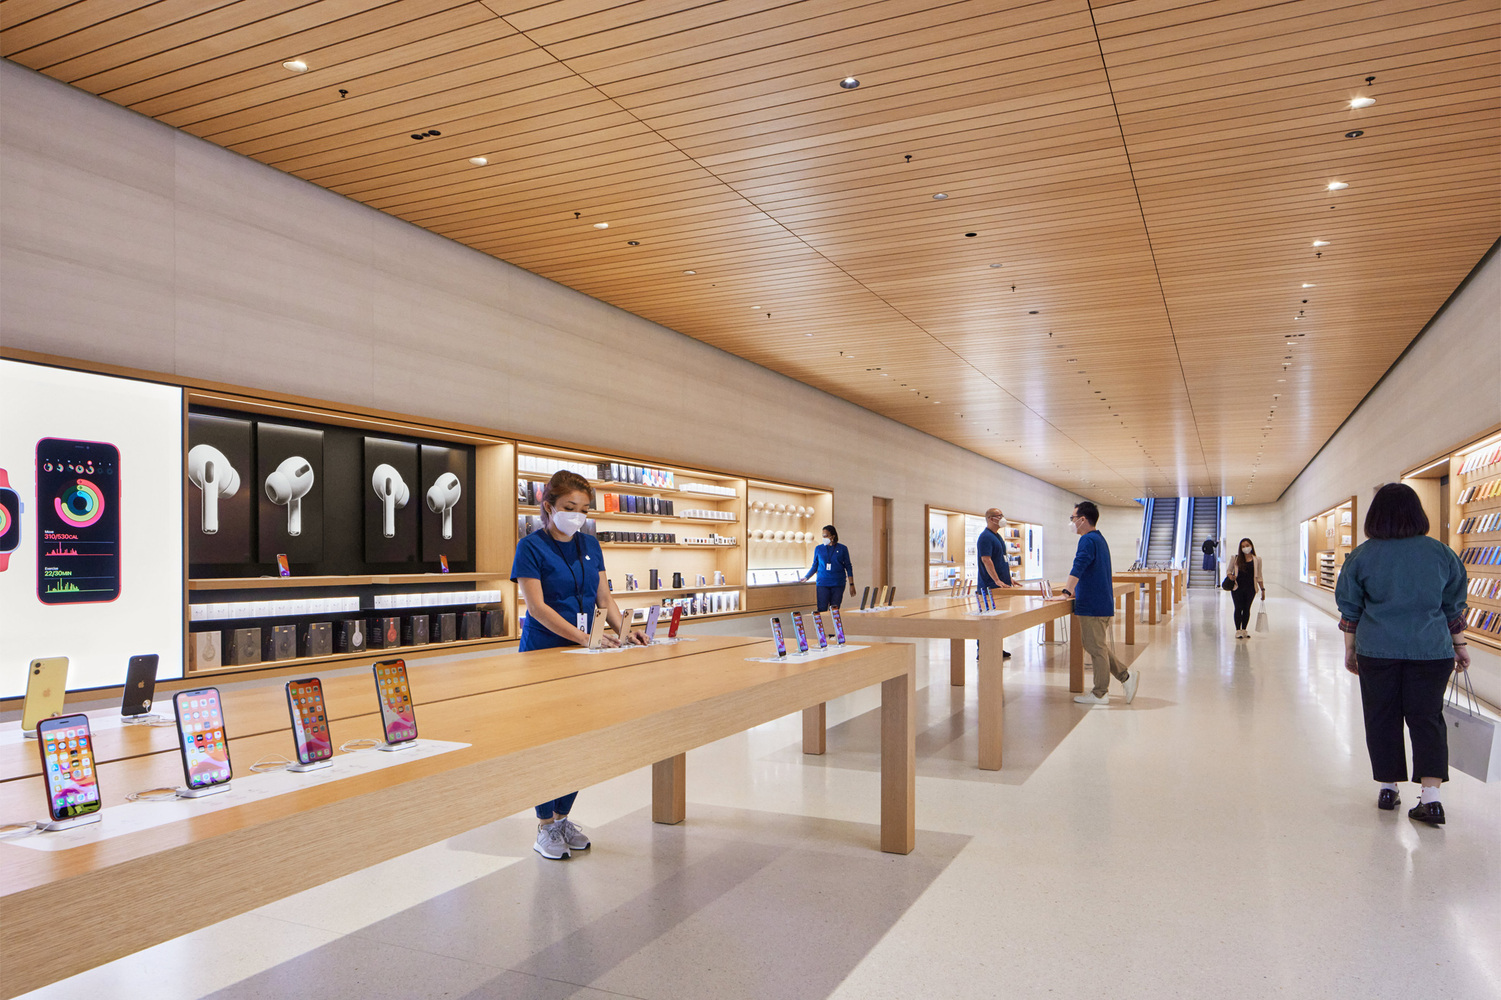 apple_nso-marina-bay-sands_curated-apple-products-tech-support_09072020